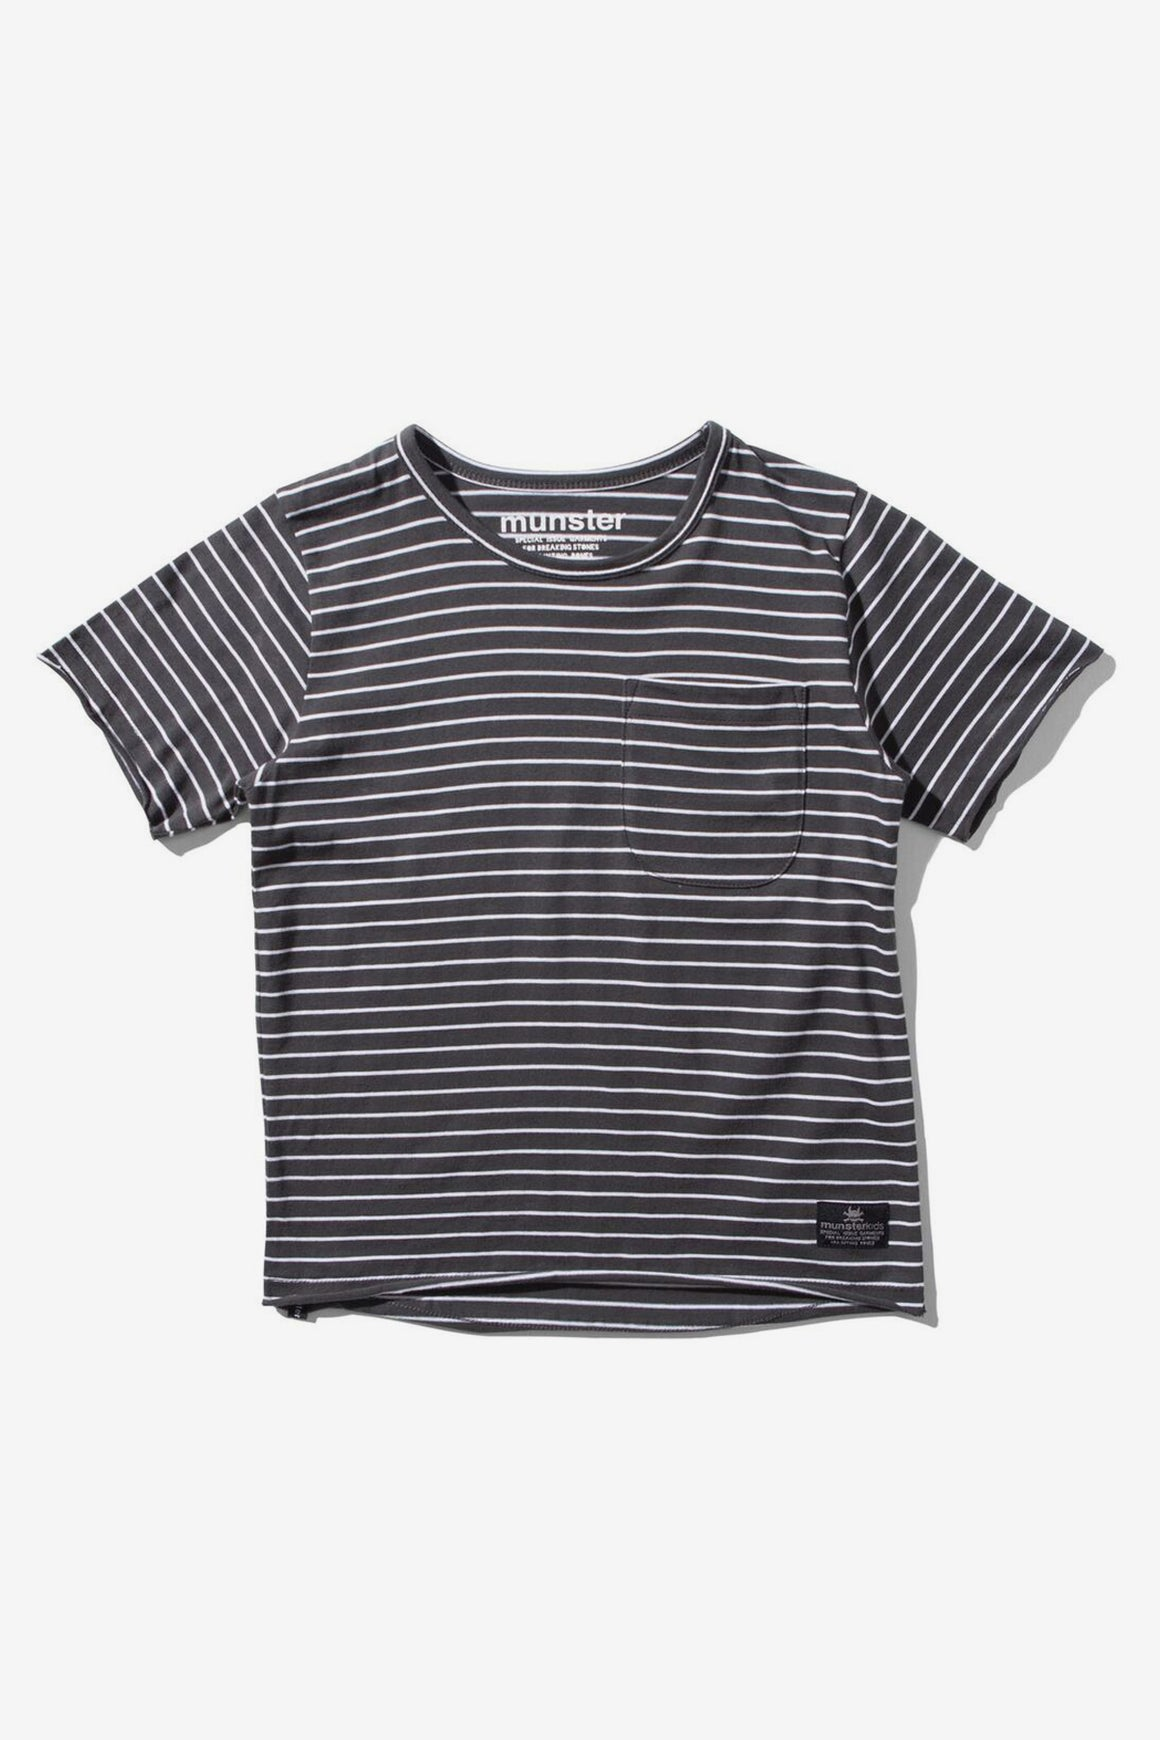 Munster Kids Flatline Tee - Black Stripe